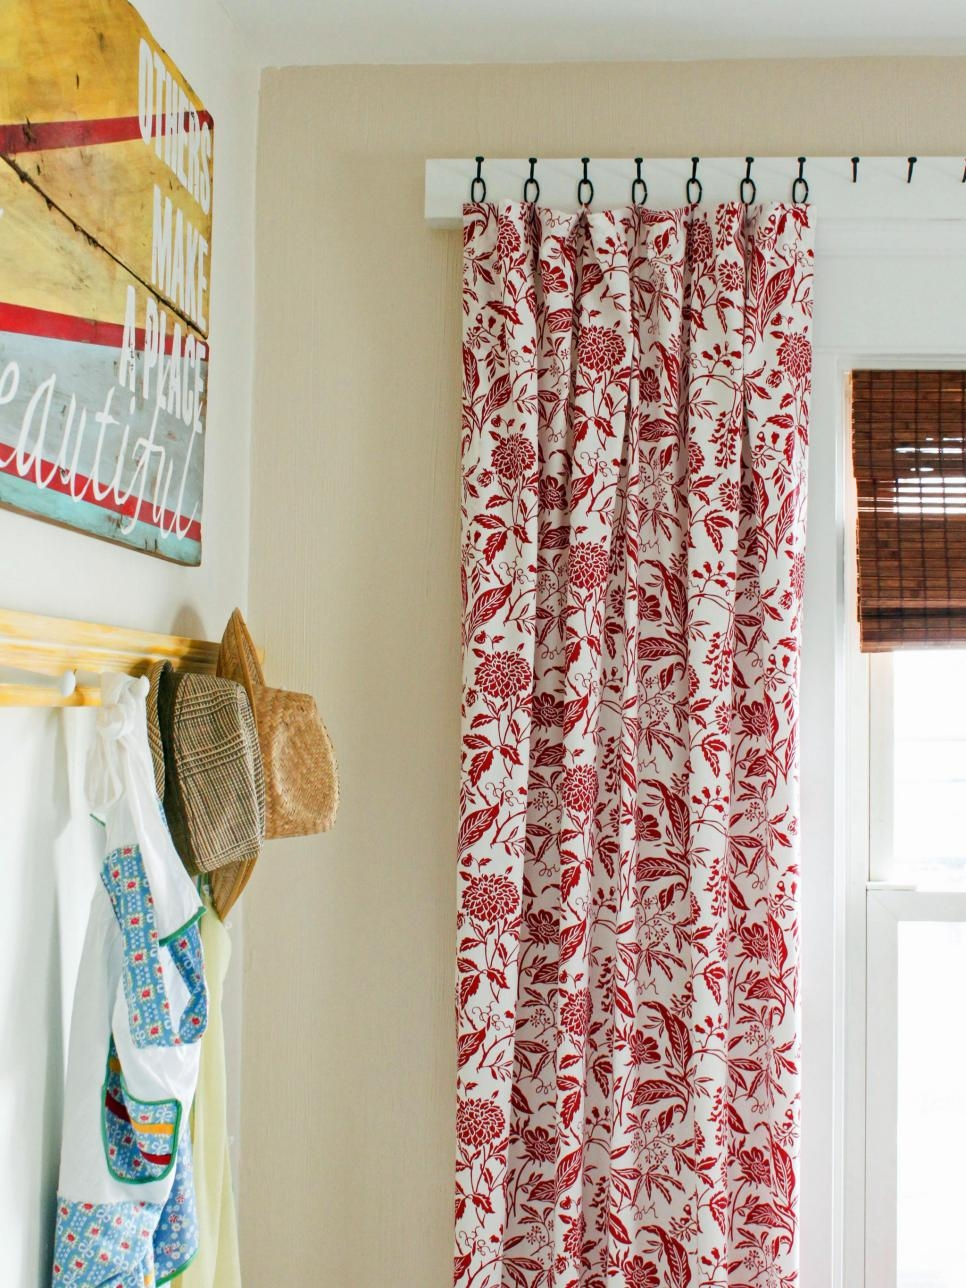 Window Treatment Ideas Hgtv With Quirky Curtains (Image 15 of 15)